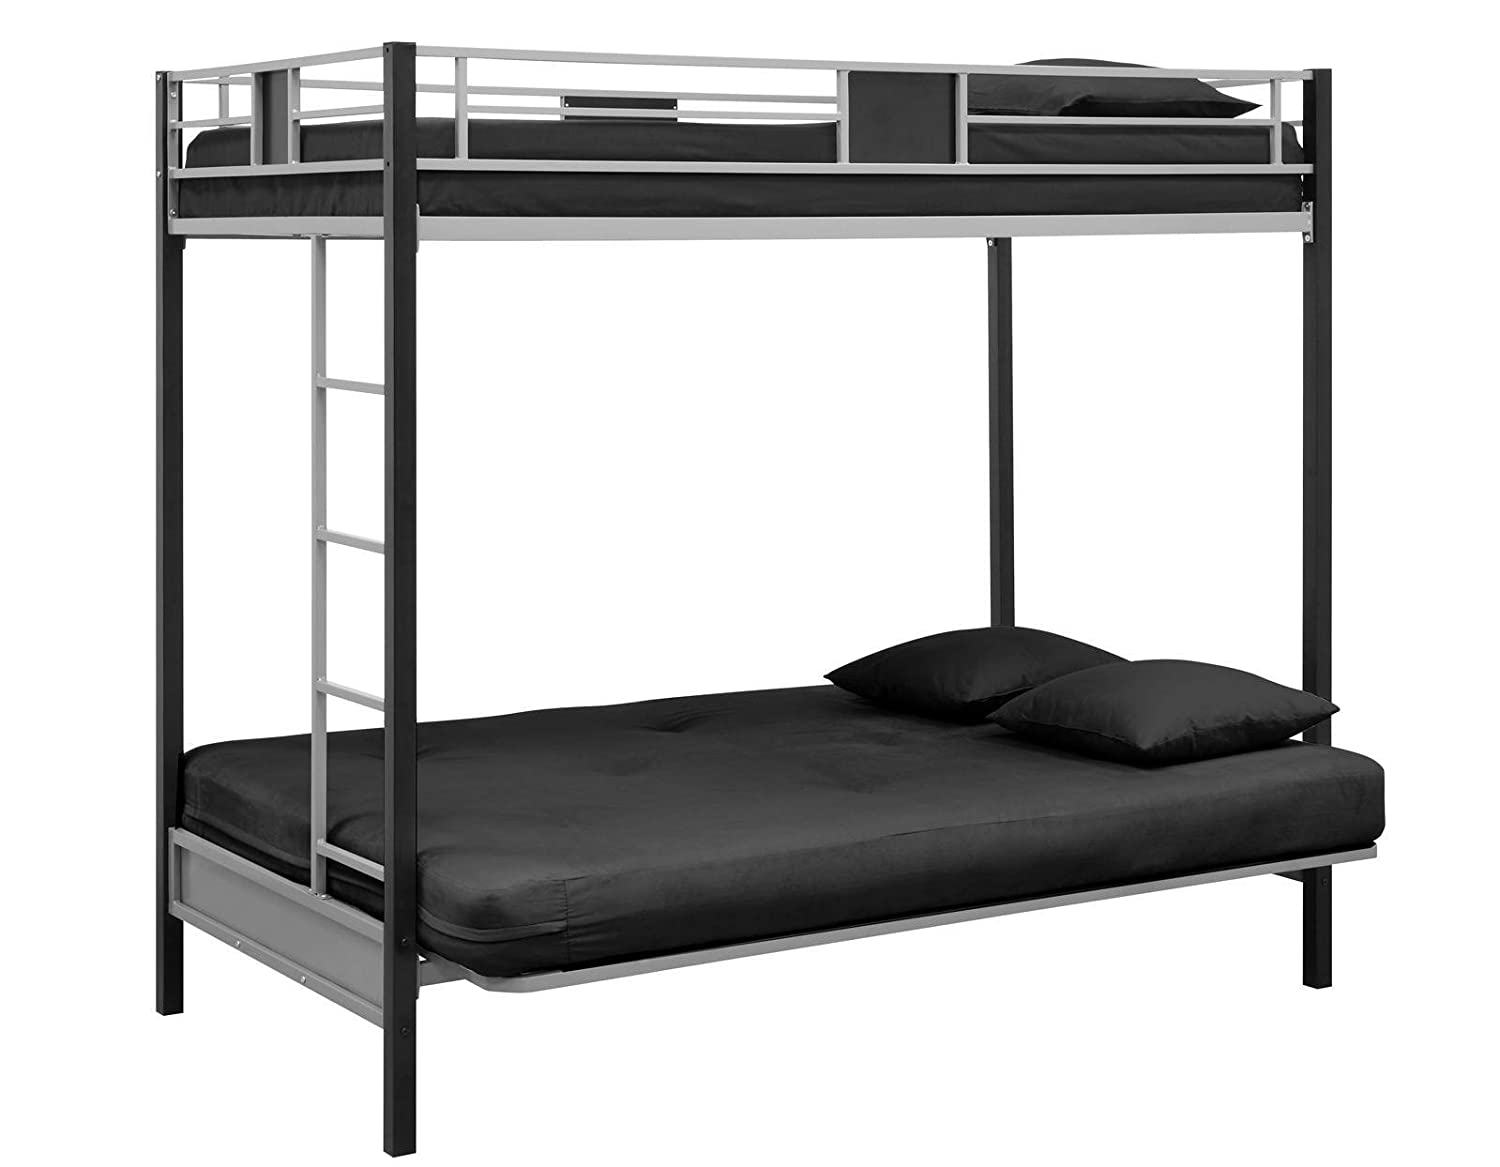 Amazon.com: DHP Screen Over Futon Metal Bunk Bed, Silver/Black: Kitchen &  Dining - Amazon.com: DHP Screen Over Futon Metal Bunk Bed, Silver/Black